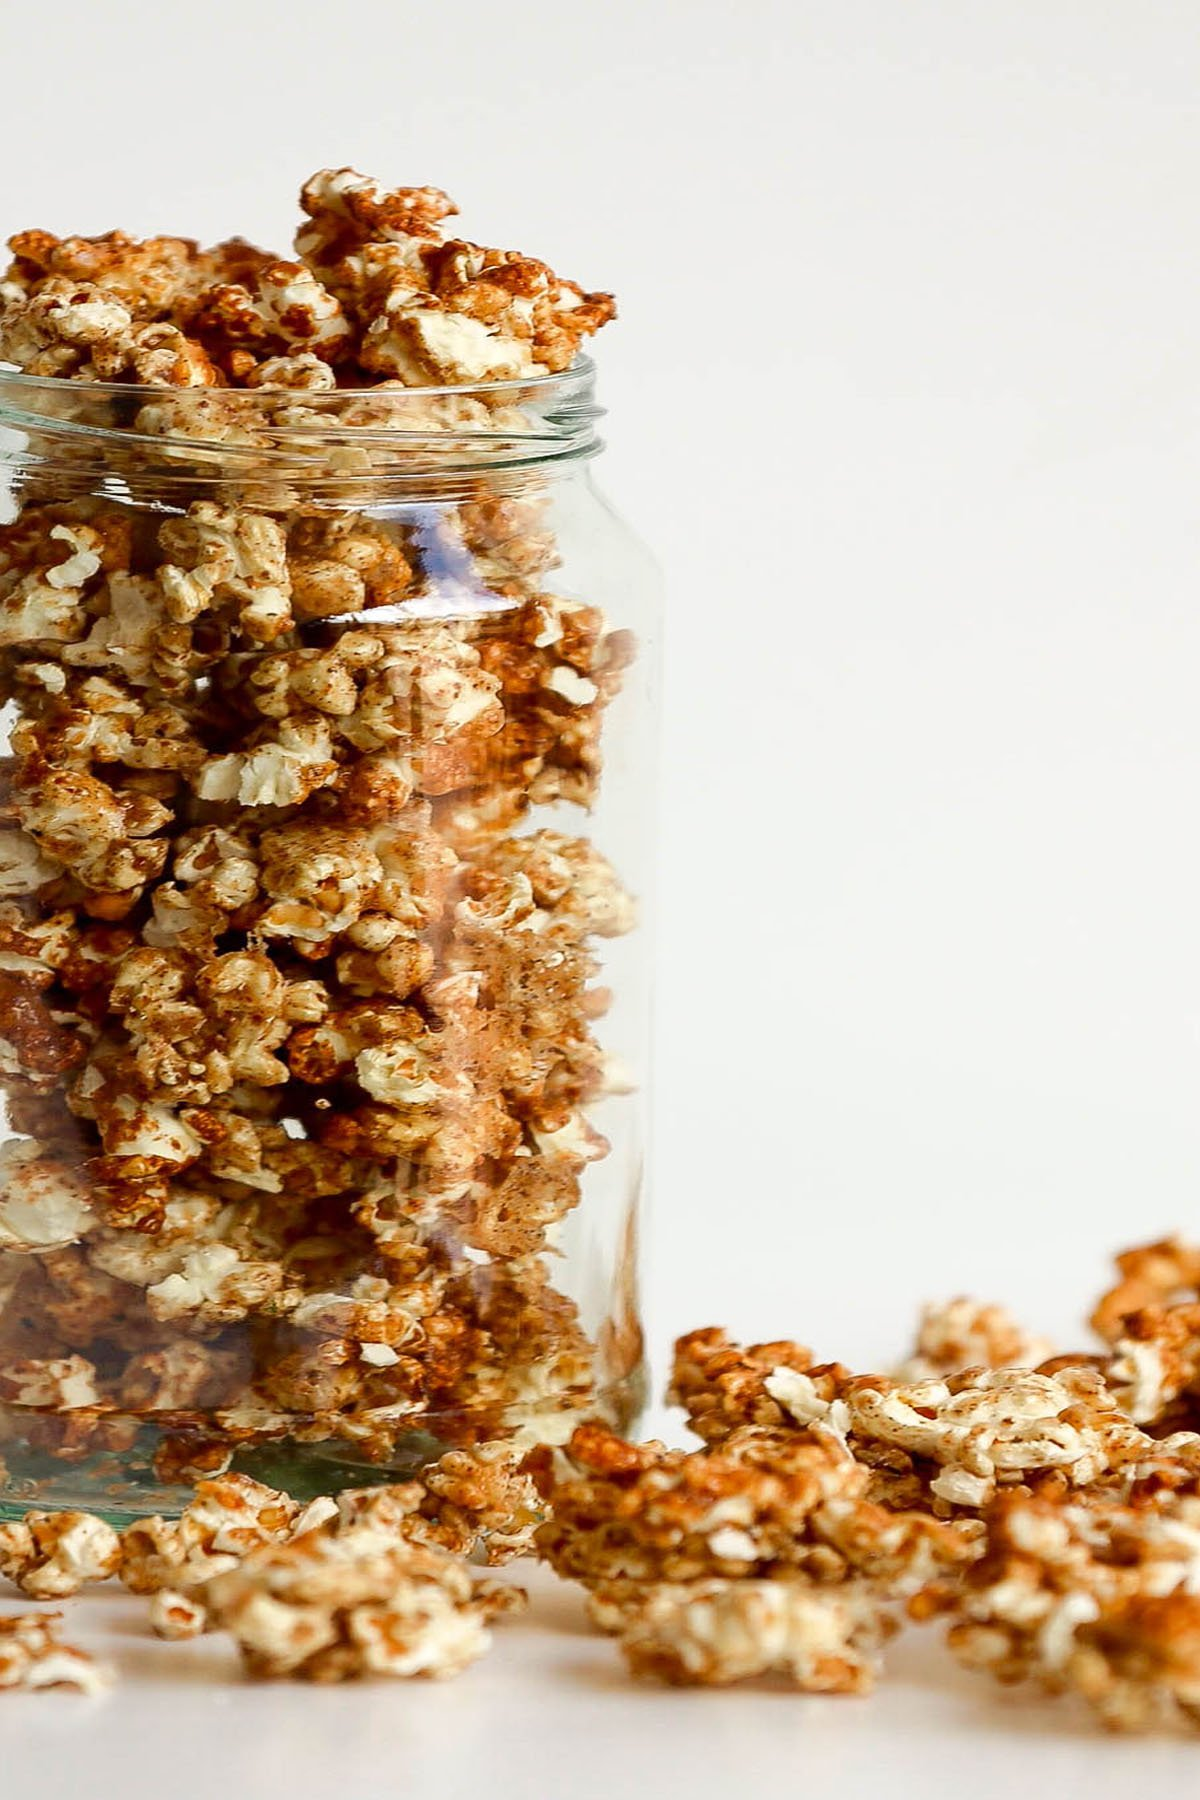 Salted Caramel Cinnamon Popcorn - You Totally Got This - Quick & Easy Recipe